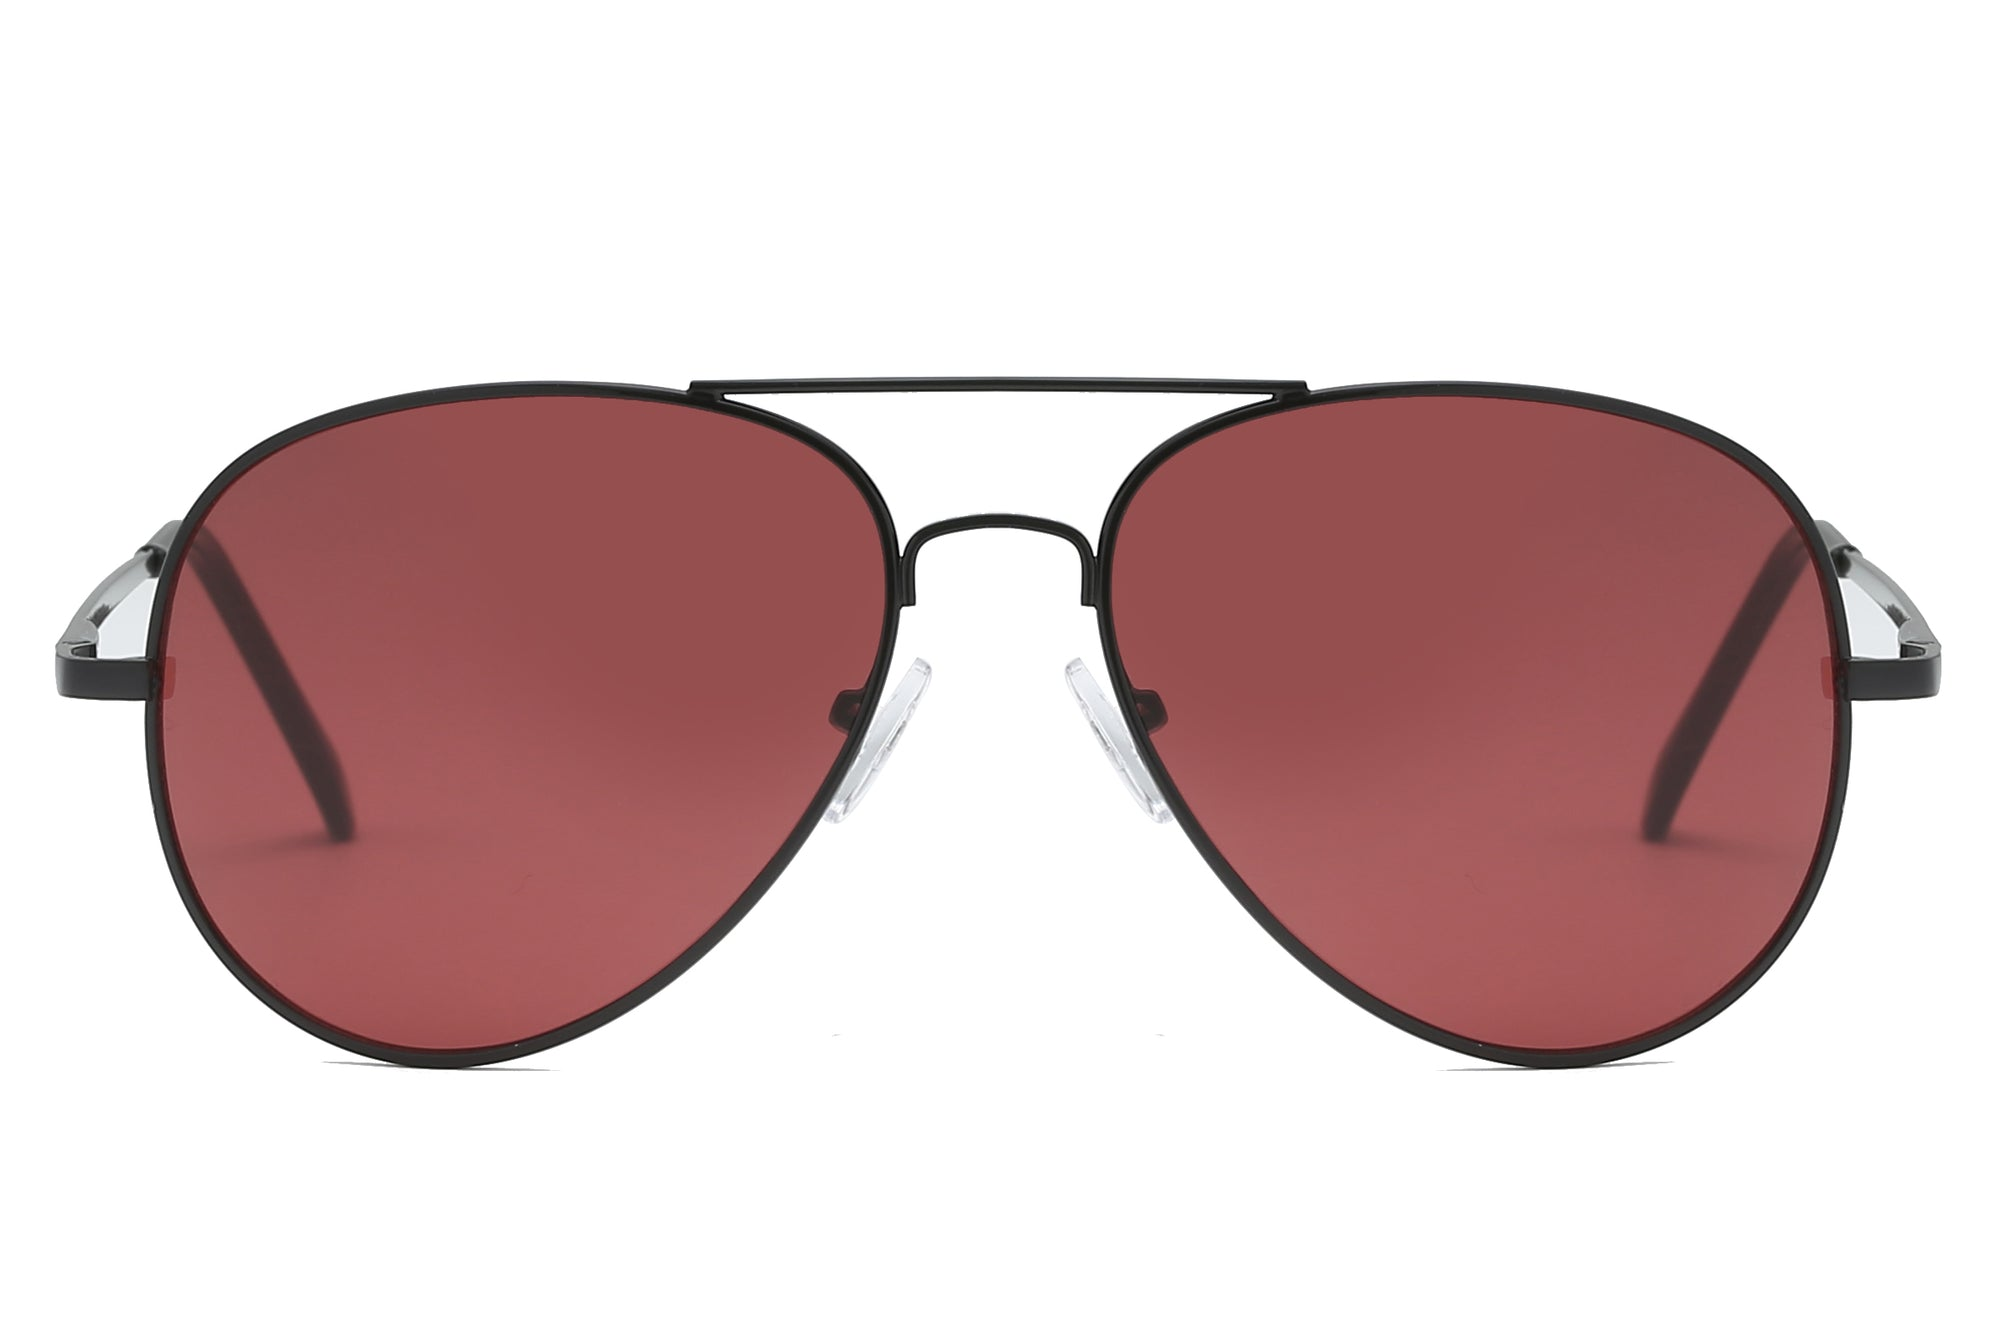 S1017 - Unisex Aviator Sunglasses - Wholesale Sunglasses and glasses